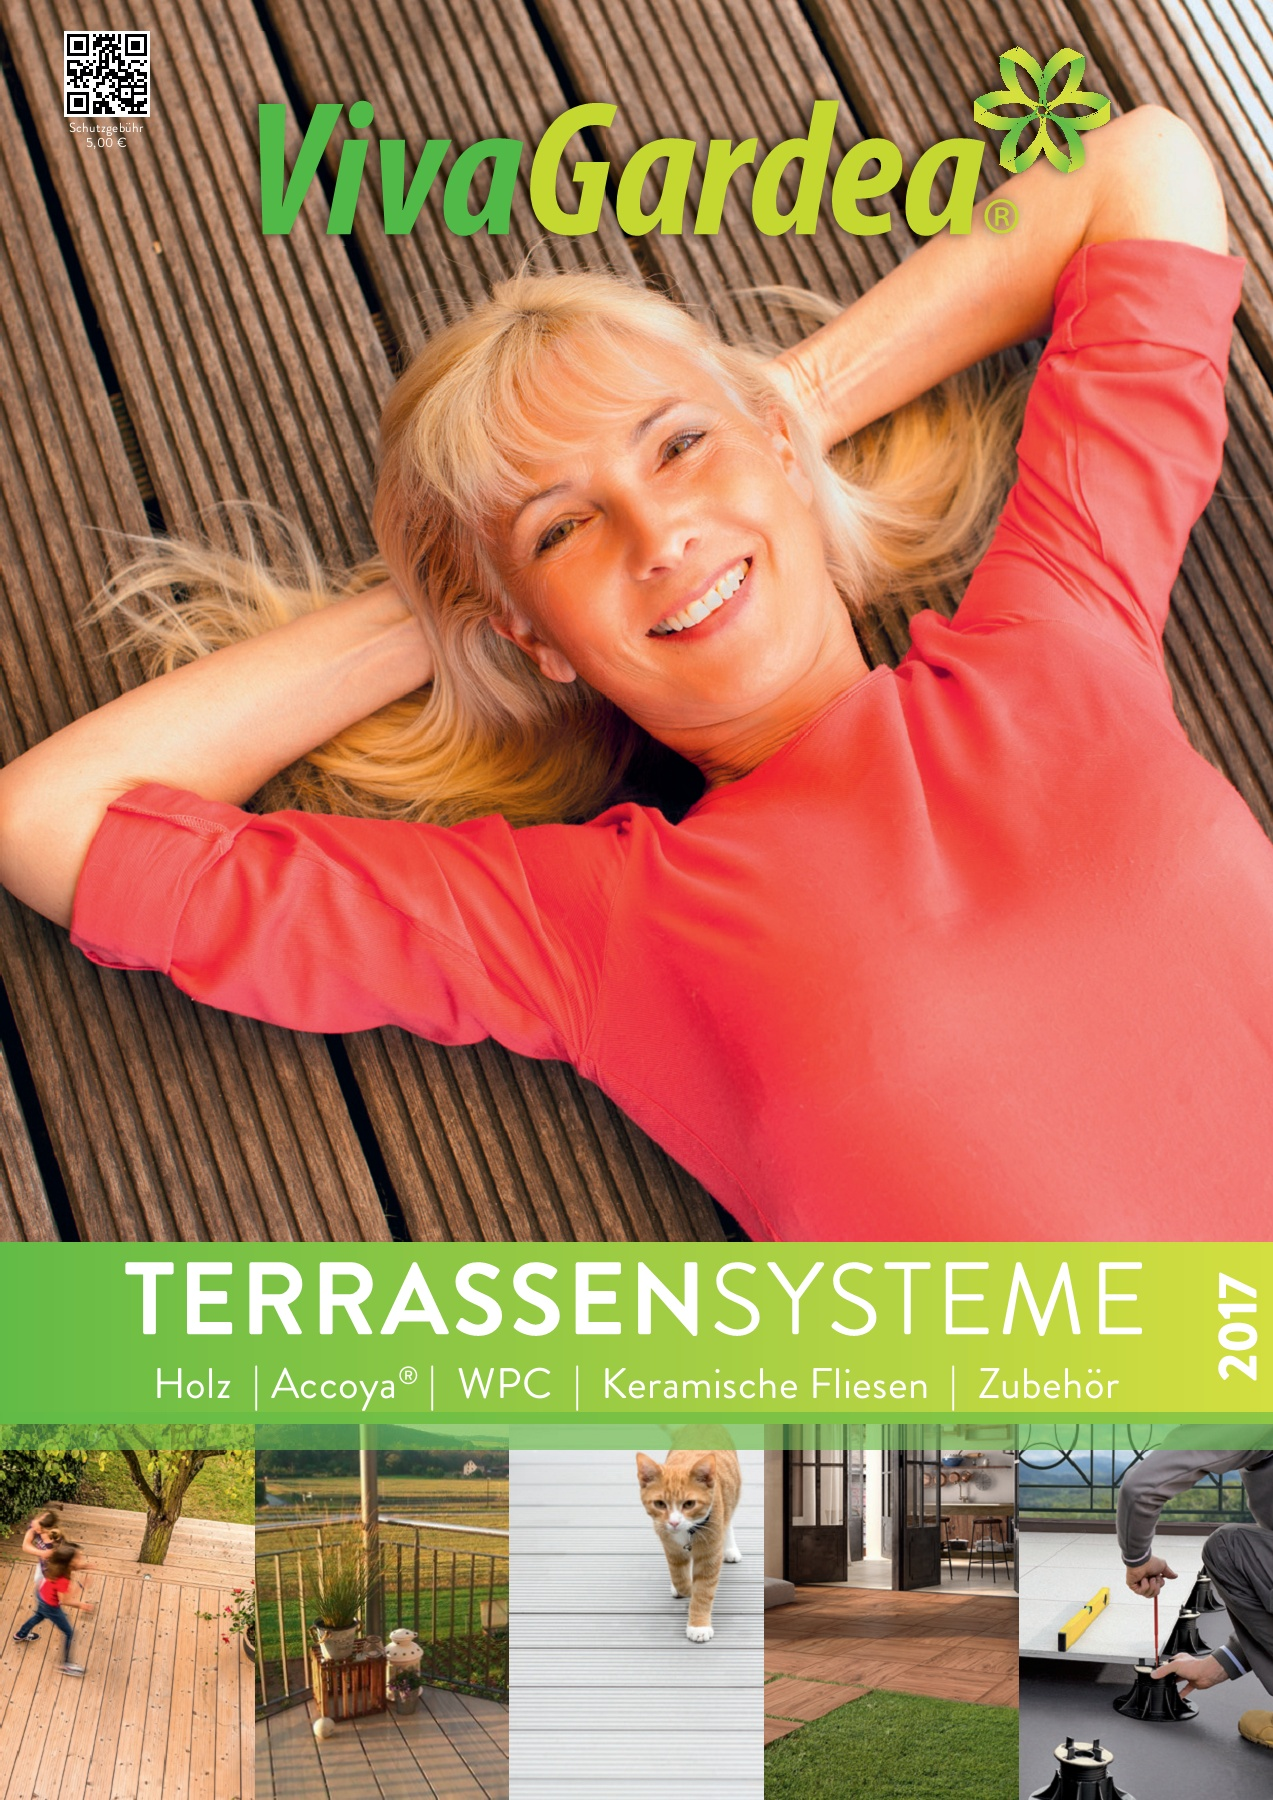 Wpc Terrasse Moos Entfernen Terrassensysteme 2017 Pages 51 92 Text Version Anyflip